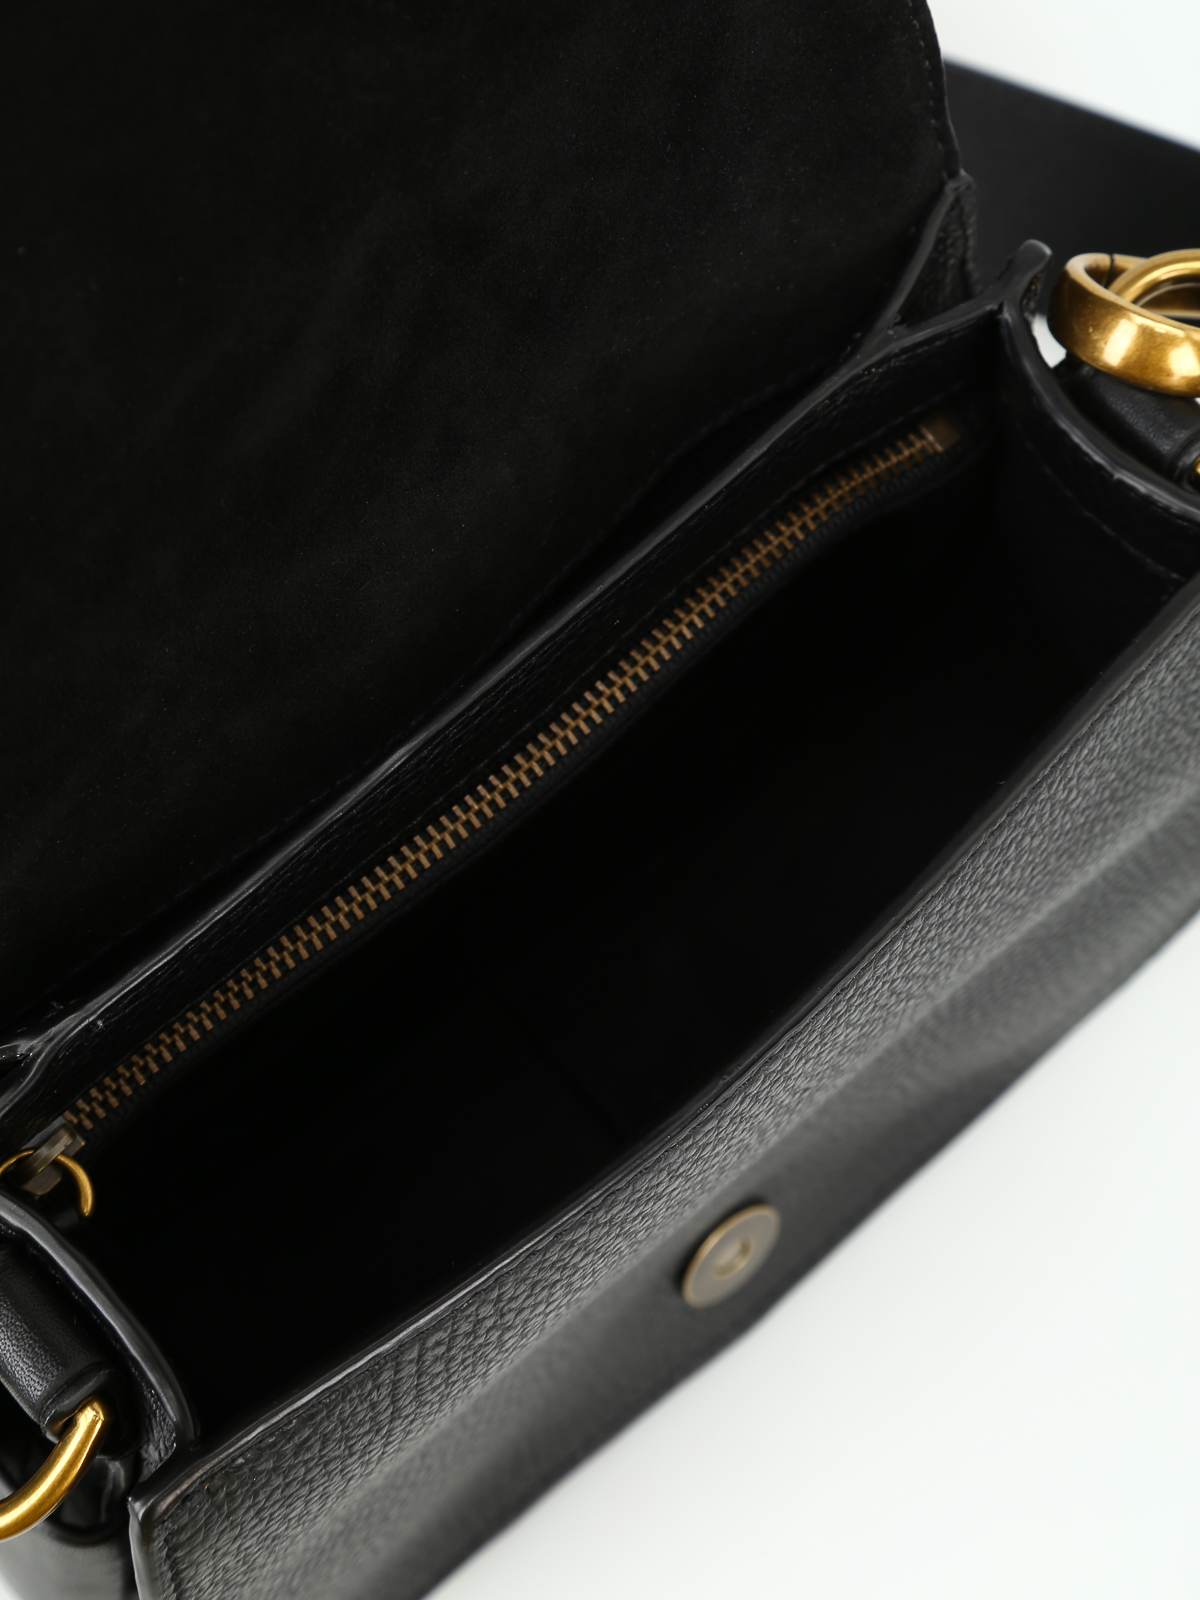 92db2245310a POLO RALPH LAUREN buy online Black hammered leather saddle bag · POLO RALPH  LAUREN  cross body bags ...